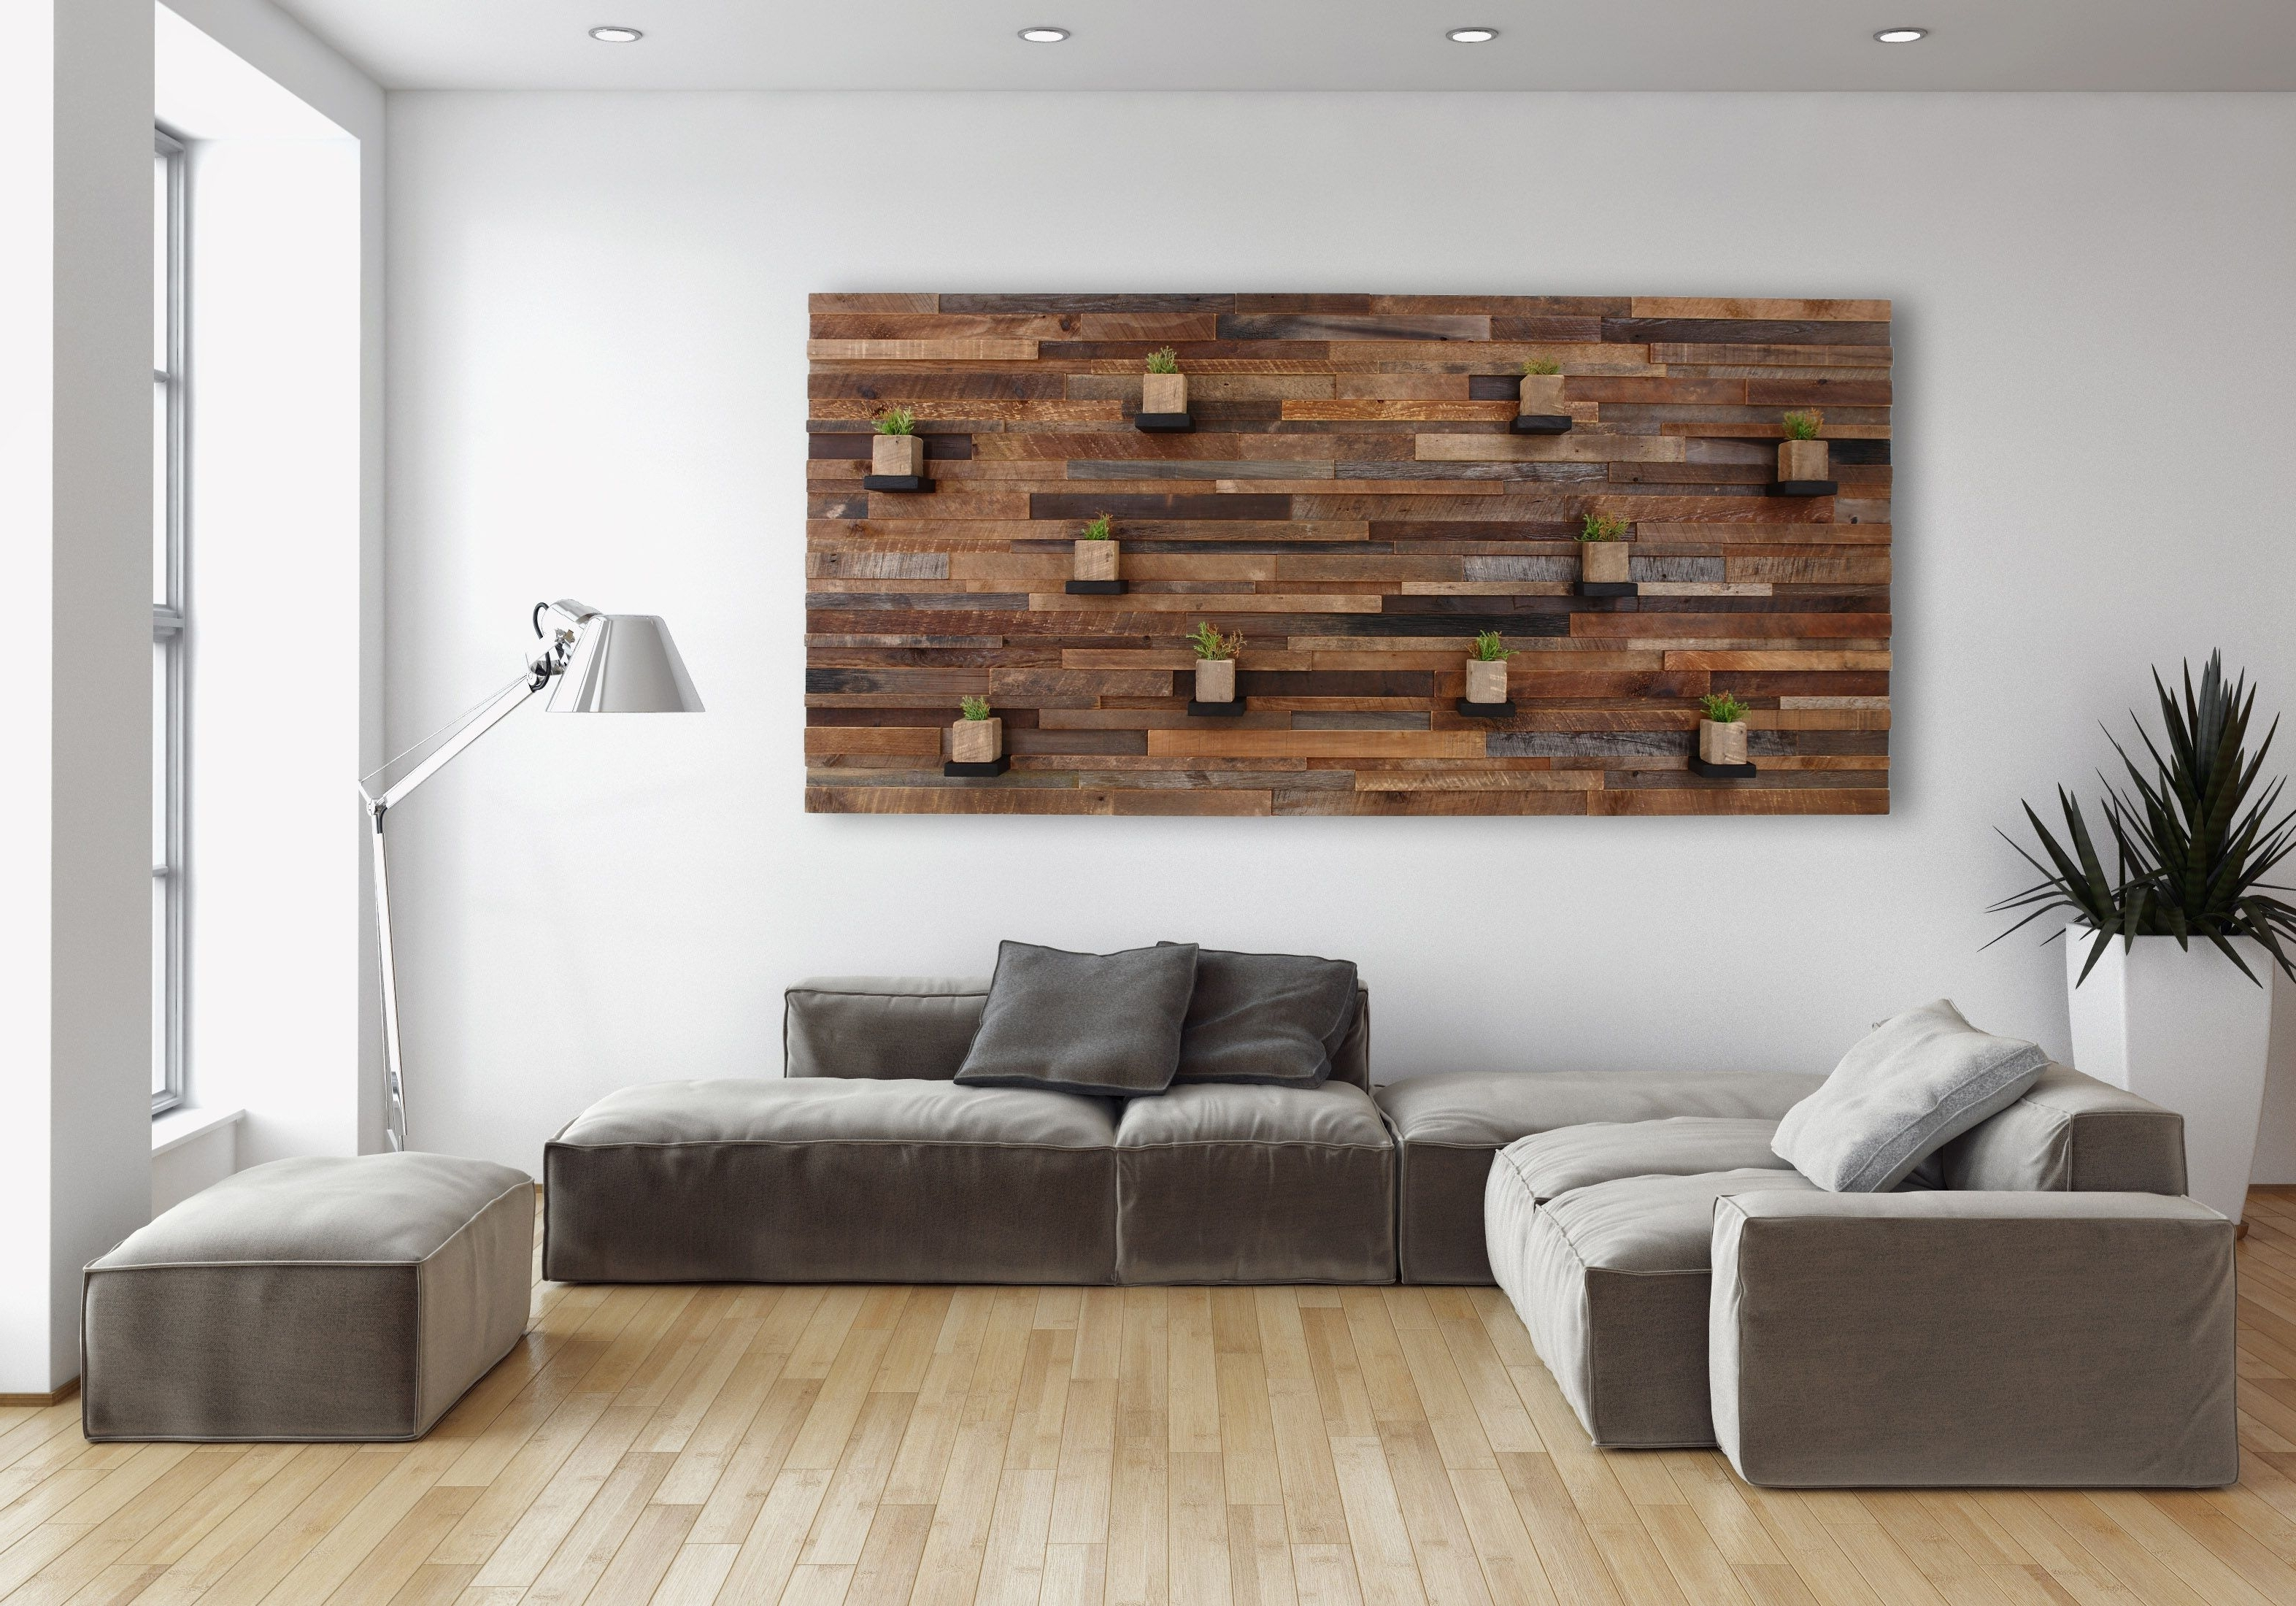 Personalized Wood Wall Art Within Preferred Hand Made Wood Wall Art With Floating Wood Shelves 84 (Gallery 12 of 20)